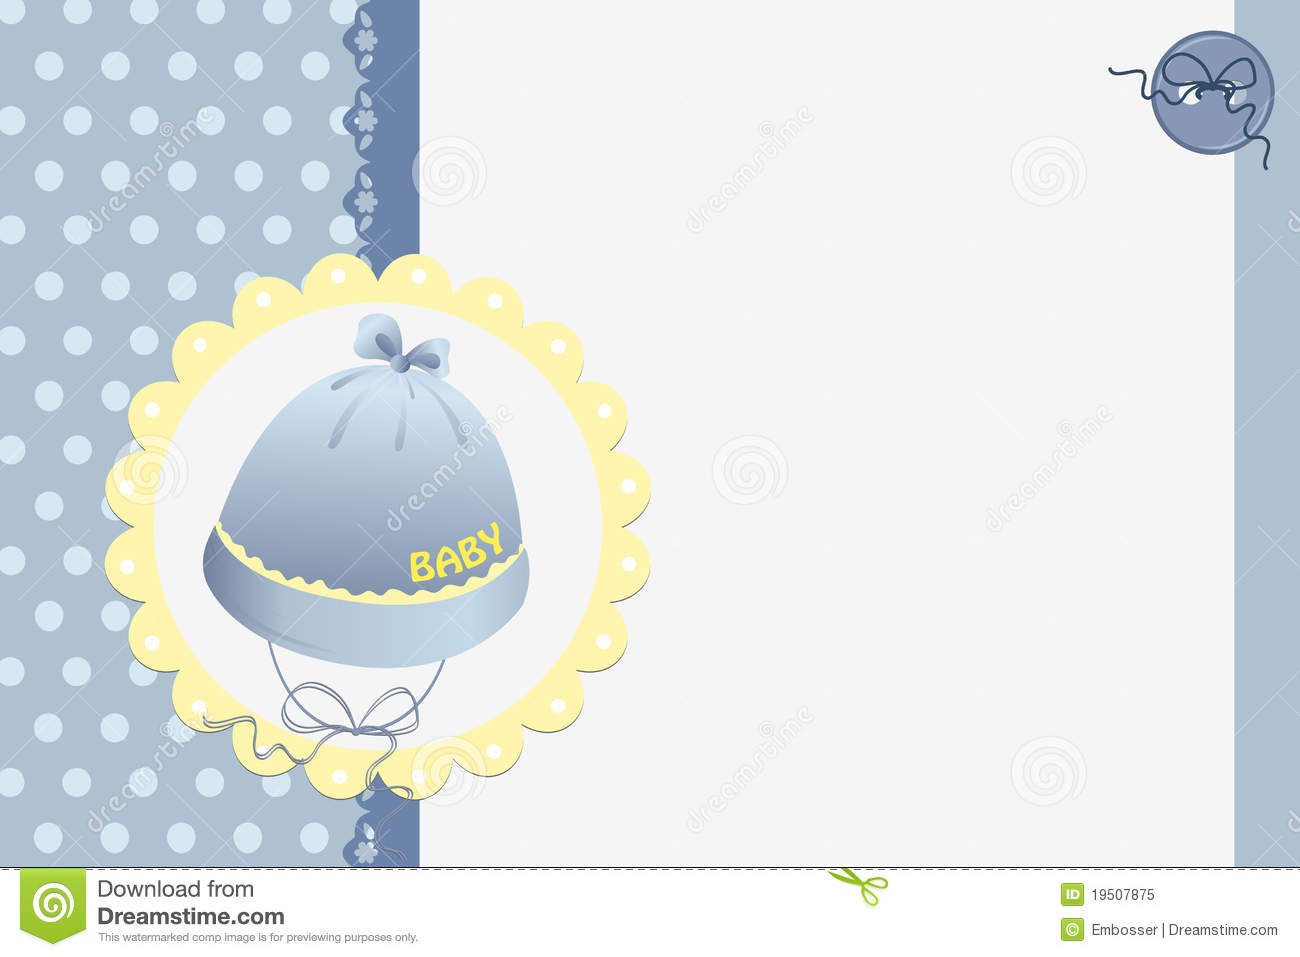 012 Template Ideas Free Printable Baby Cards Templates Cute S Card - Free Printable Baby Cards Templates